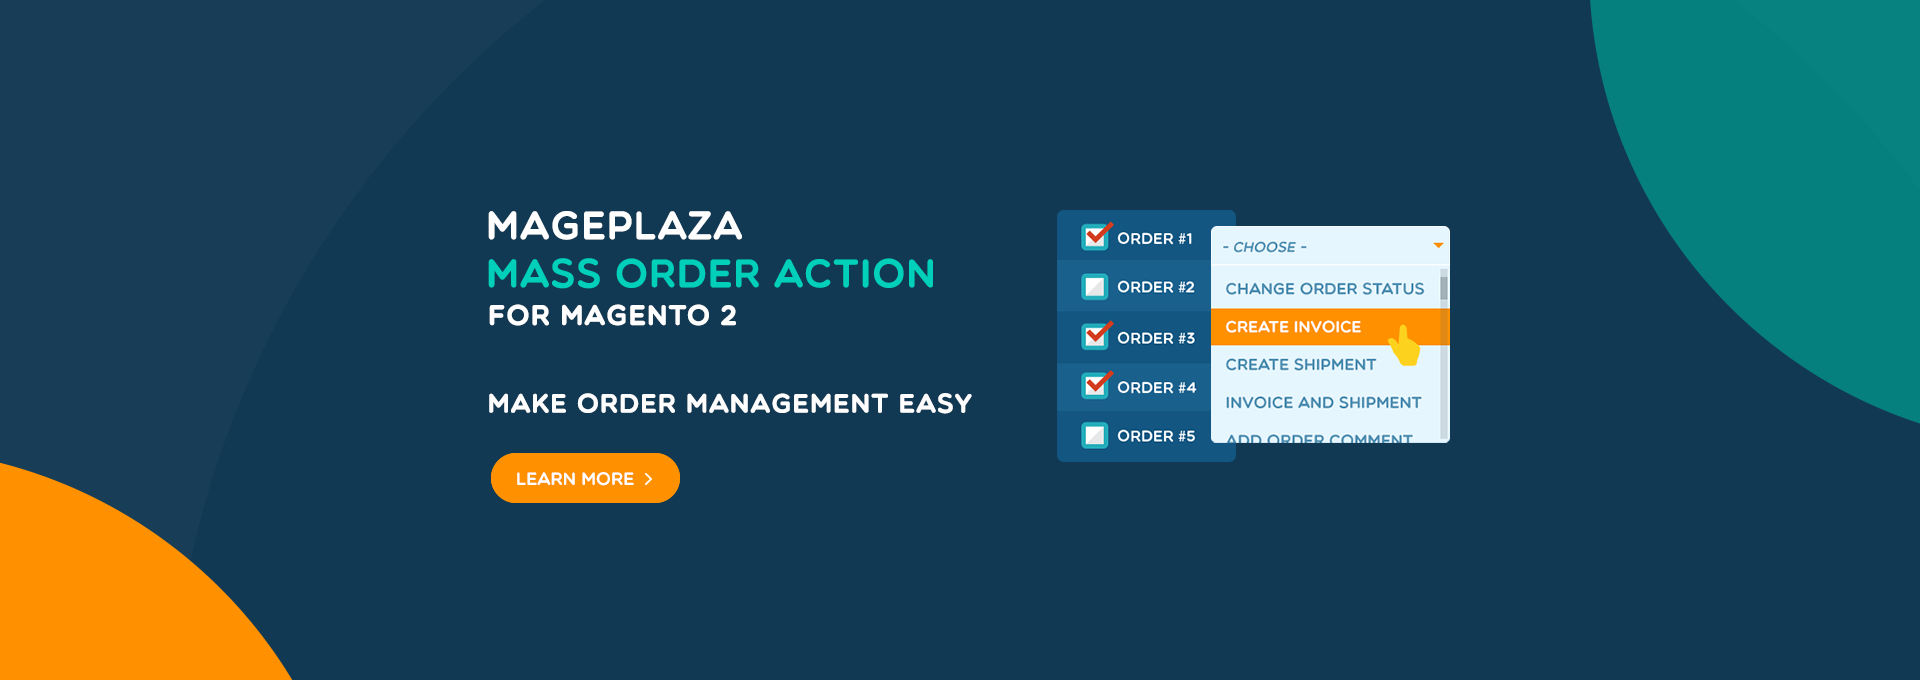 magento 2 mass order action